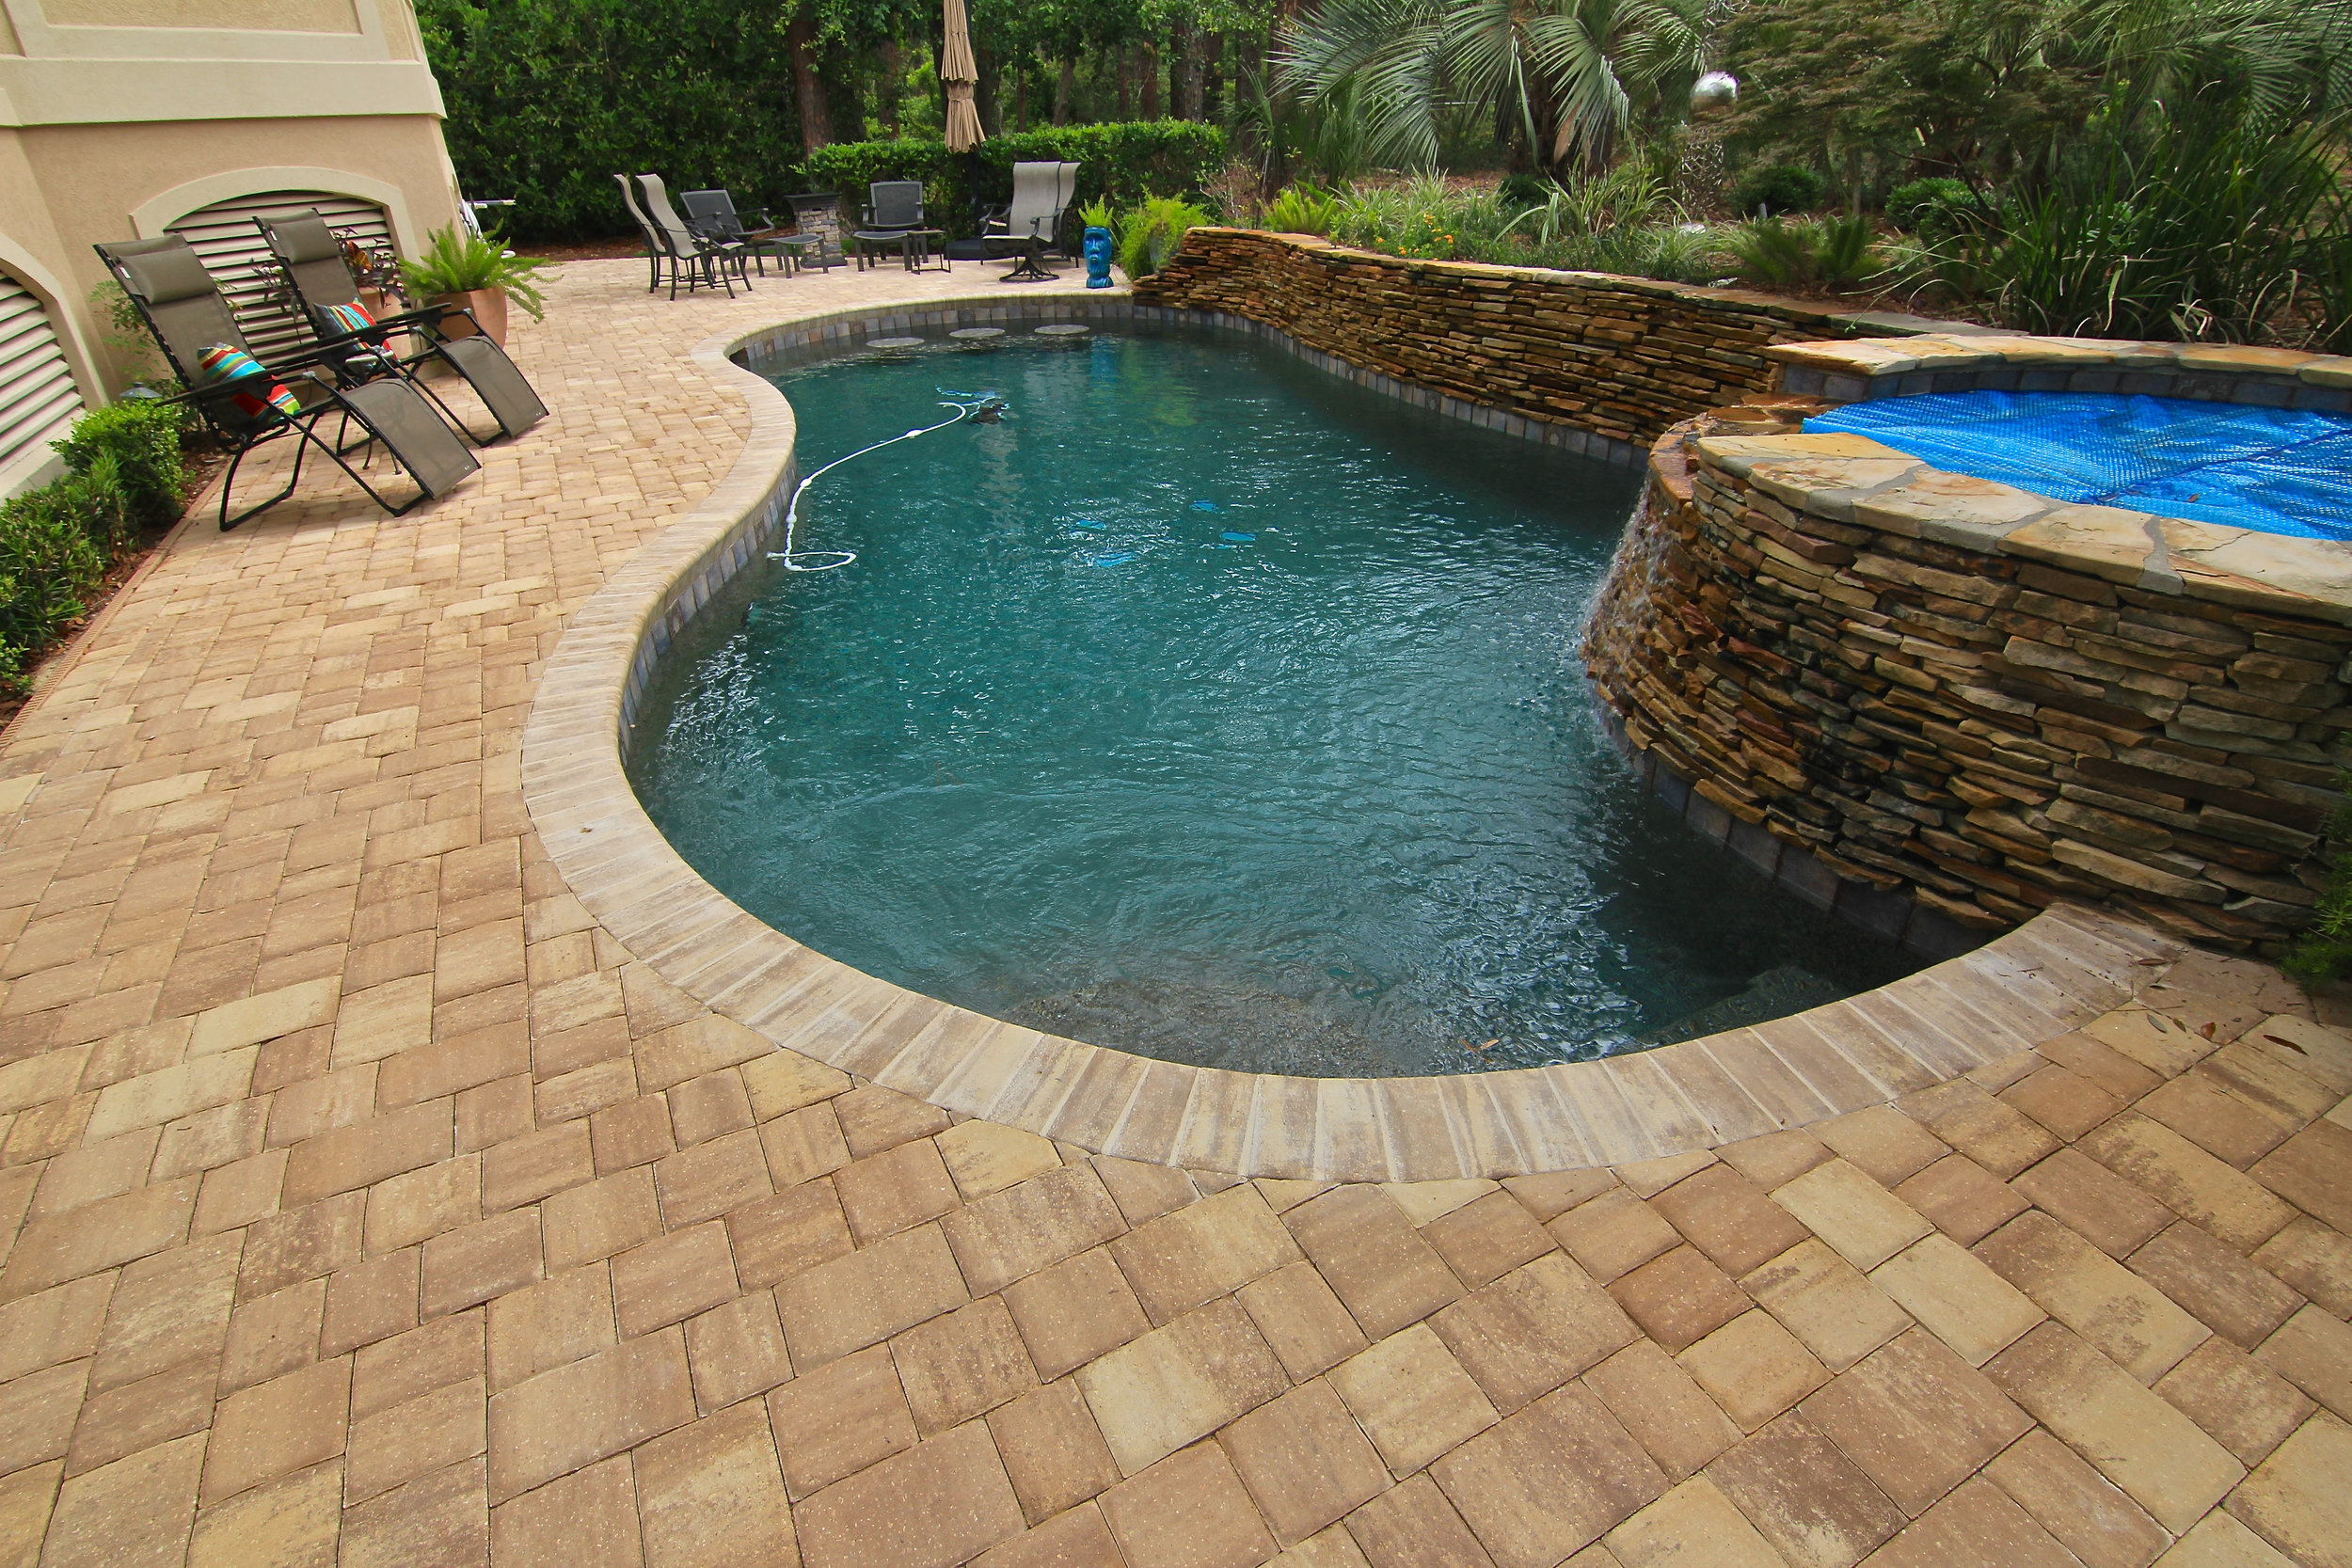 Long Cove Paver Pool Remodel (after photo)